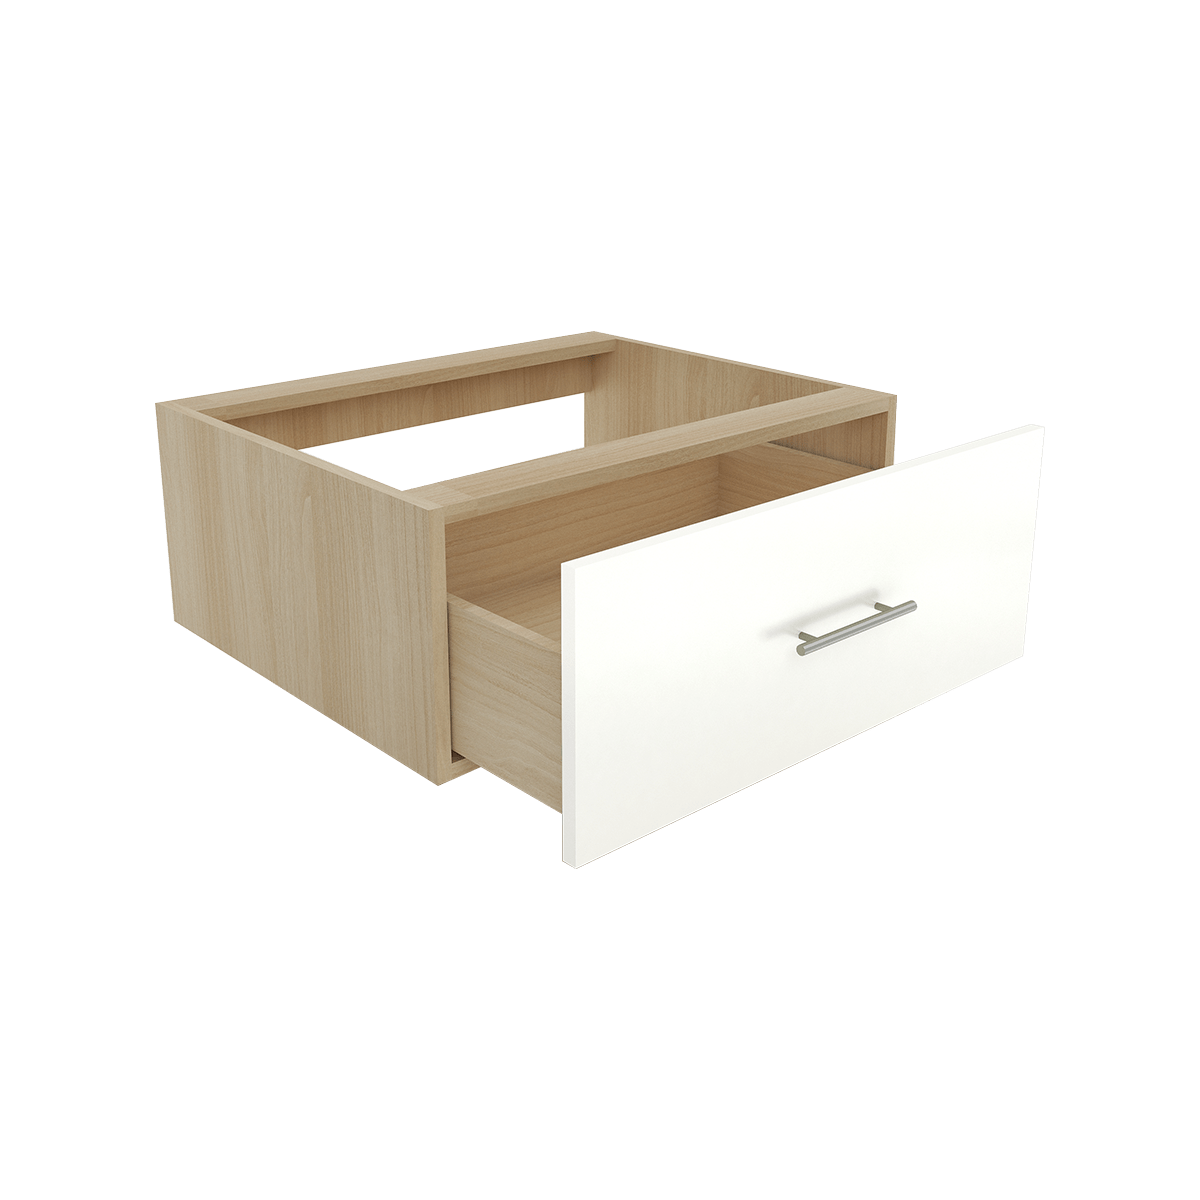 Drawer Box Cabinet